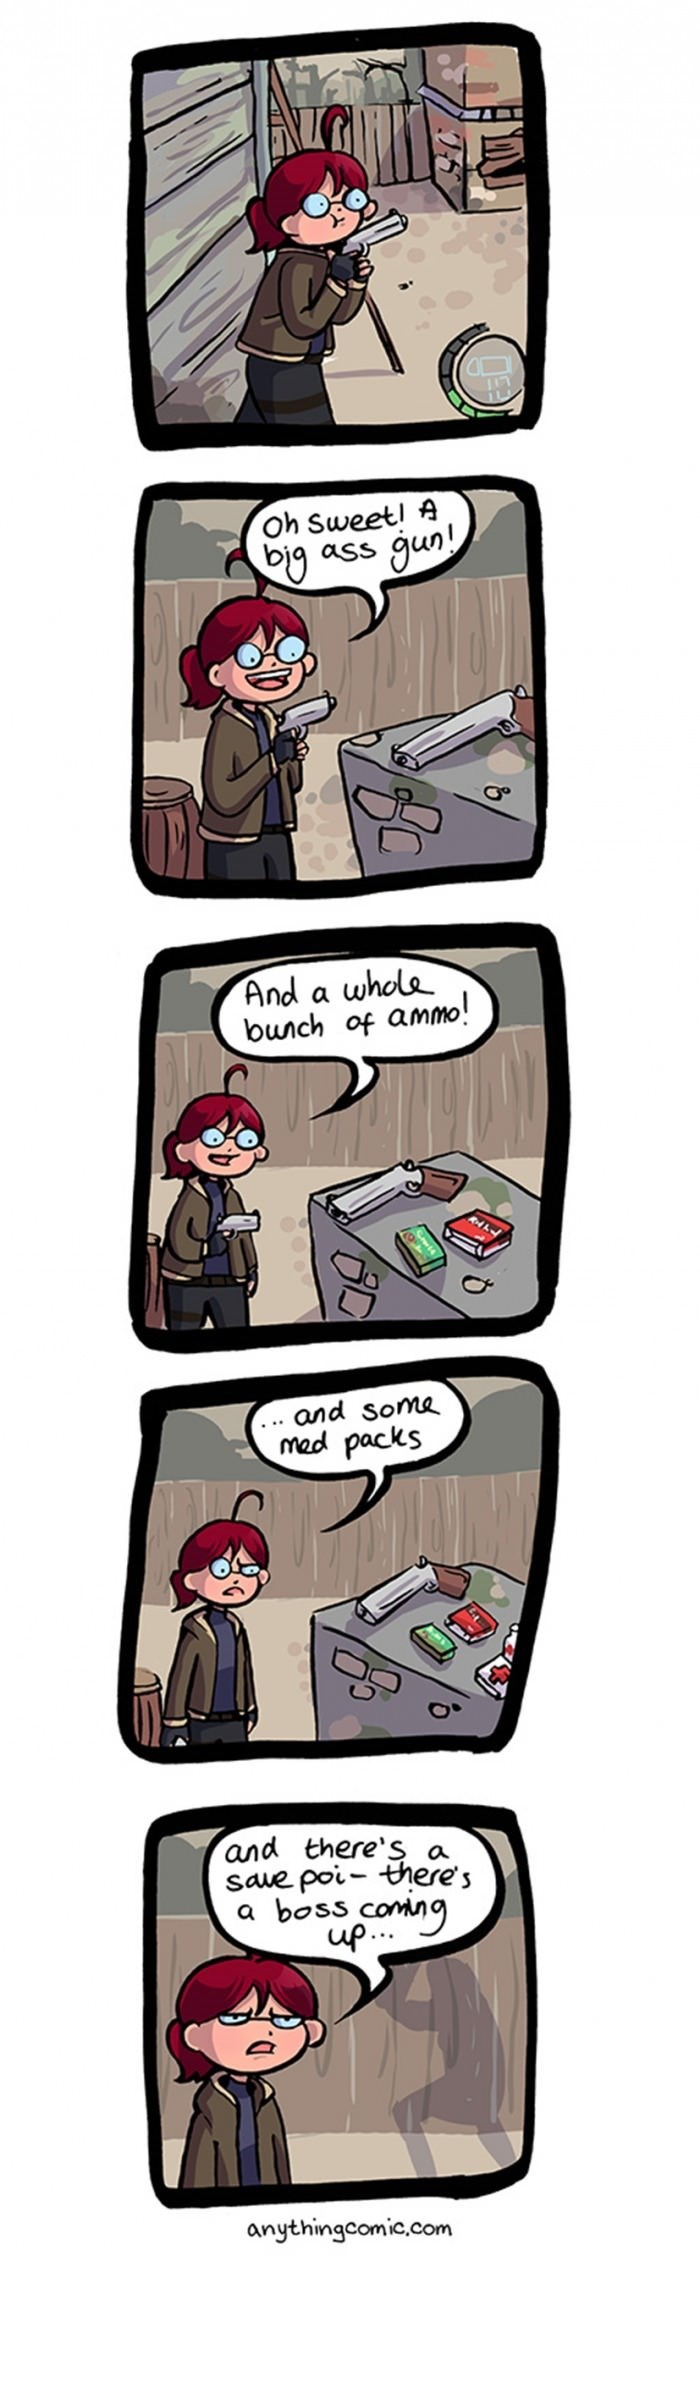 funny-web-comics-serious-v-gamers-will-understand-this-monument-towards-this-trope-in-video-gaming